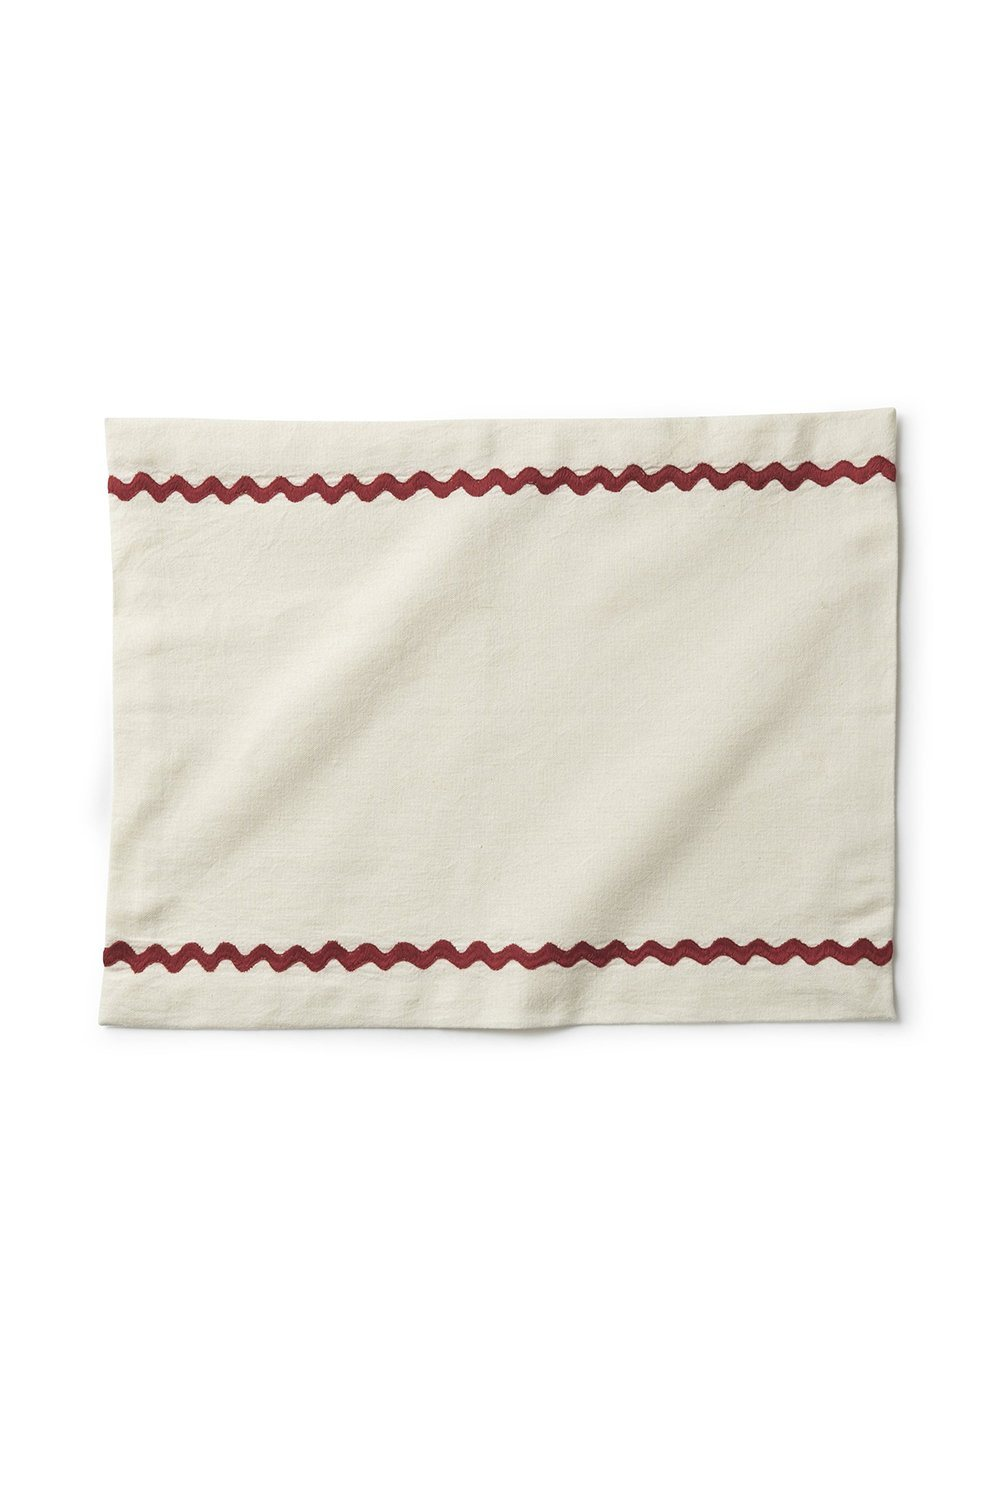 Hand-embroidered zig-zag placemat - White and Red Soft Furnishings Jore Copenhagen